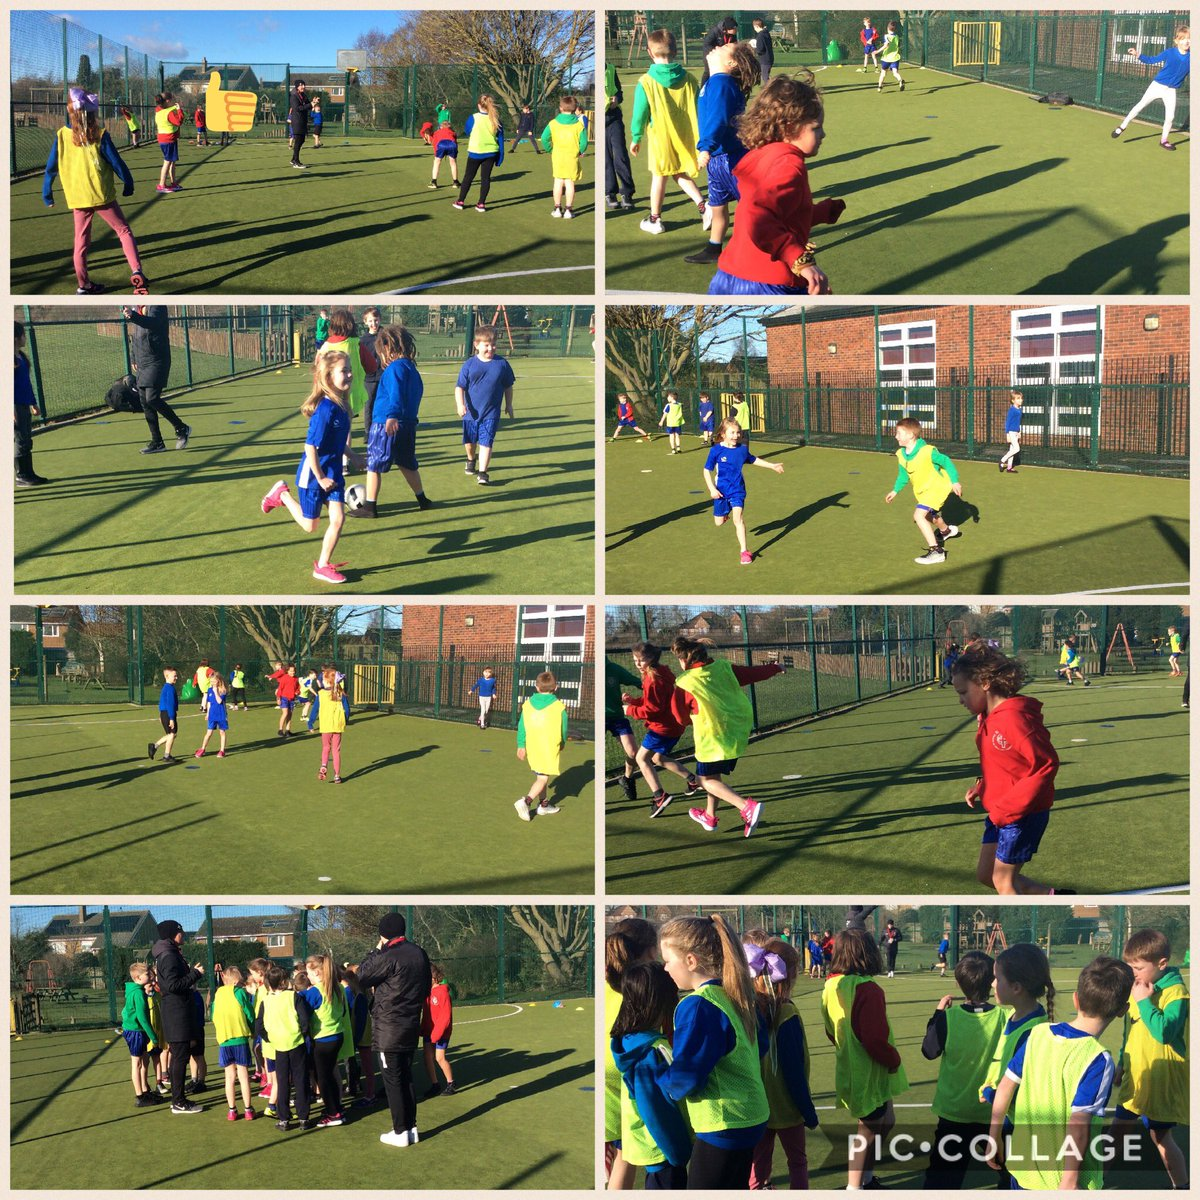 We are having a wonderful day of PE lessons with @tigerstrust in the glorious sunshine.